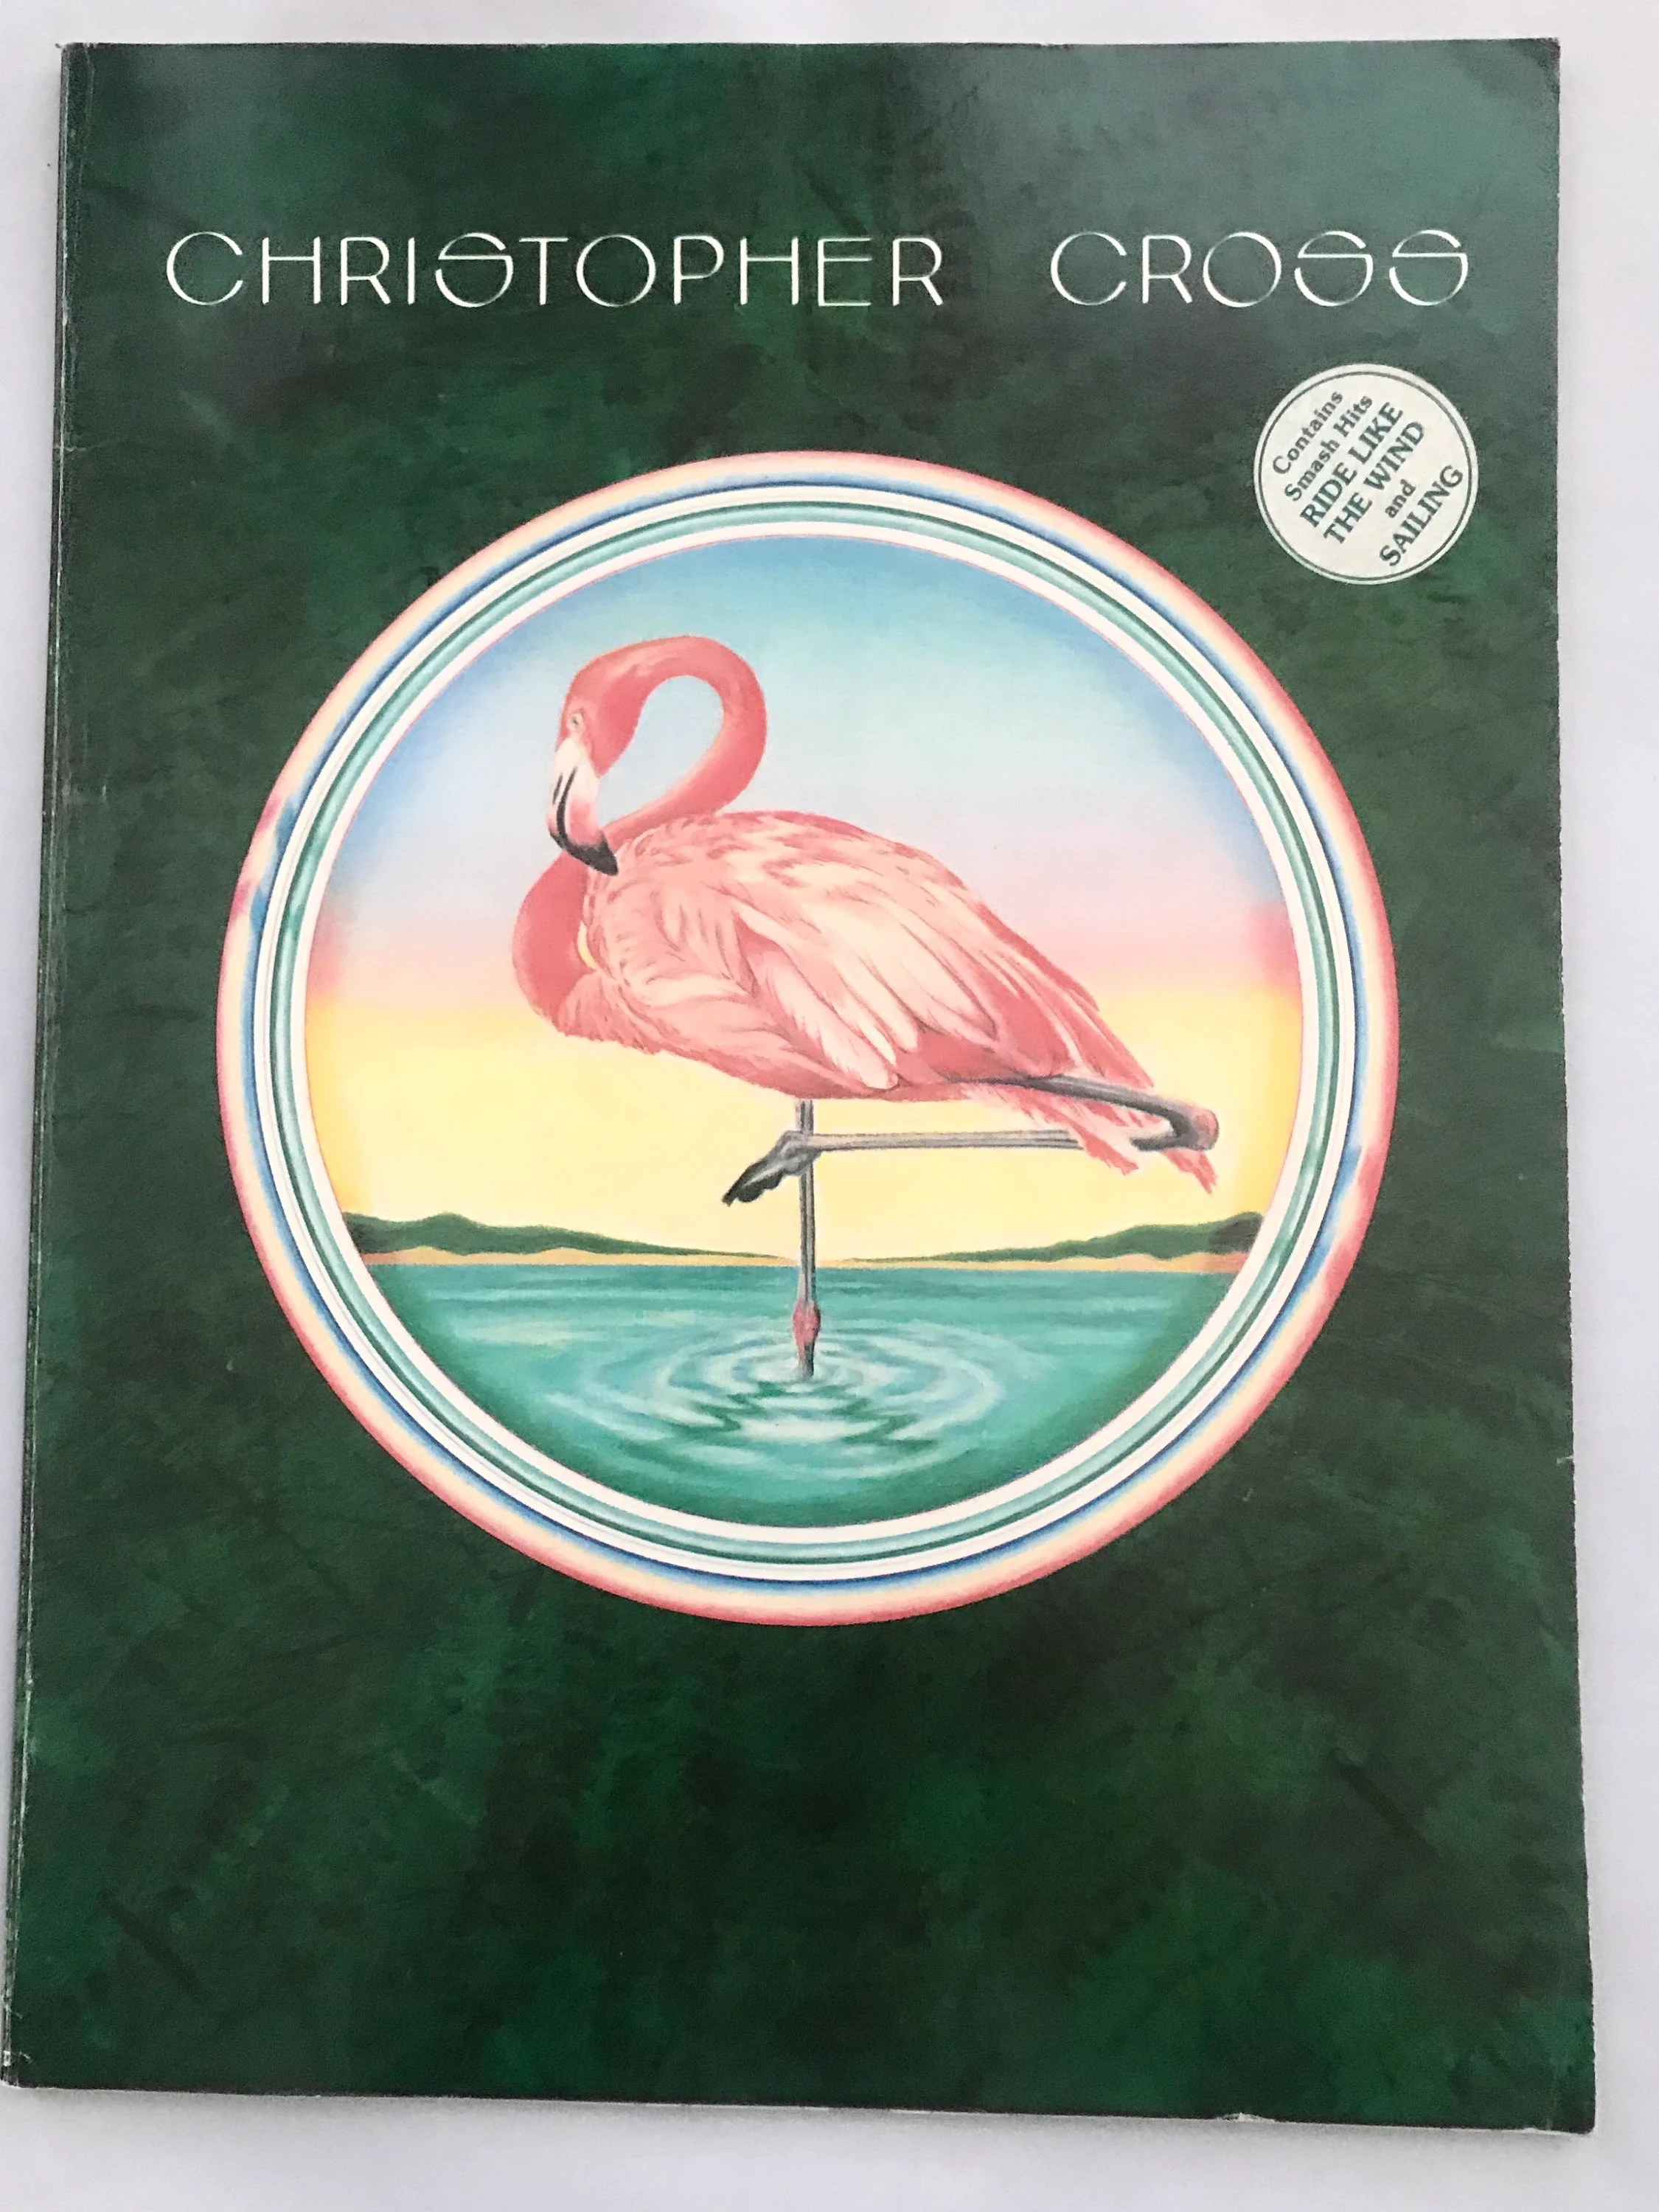 Cross Guitar Book Christopher Cross Songbook 1979 Music Book Sailing Ride Like The Wind Piano Vocals Guitar Tabs Photographs Vintage Sheet Music